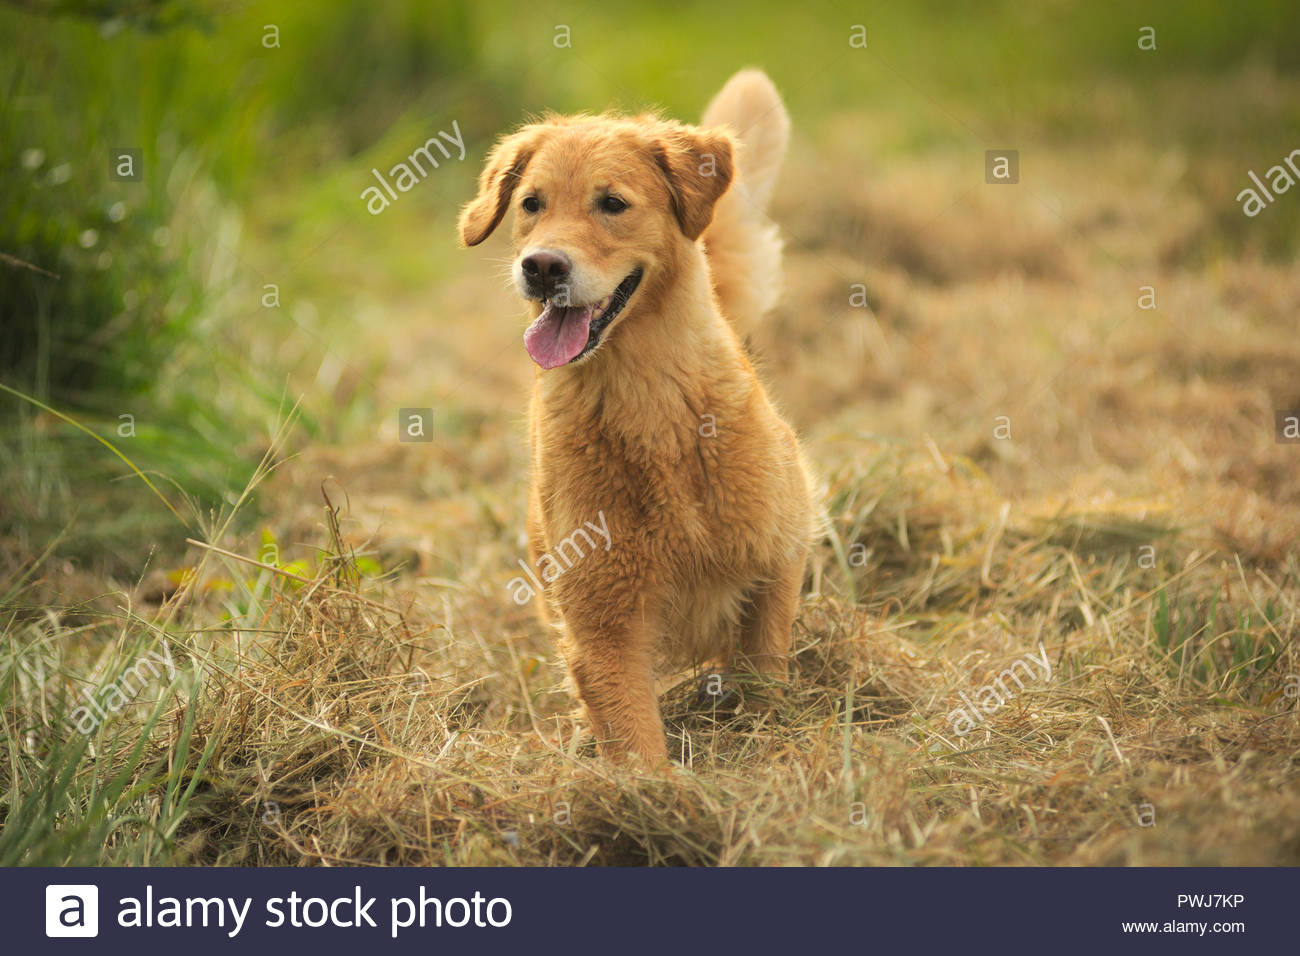 Young Golden Retriever in a country field, happy, tongue out - Stock Image